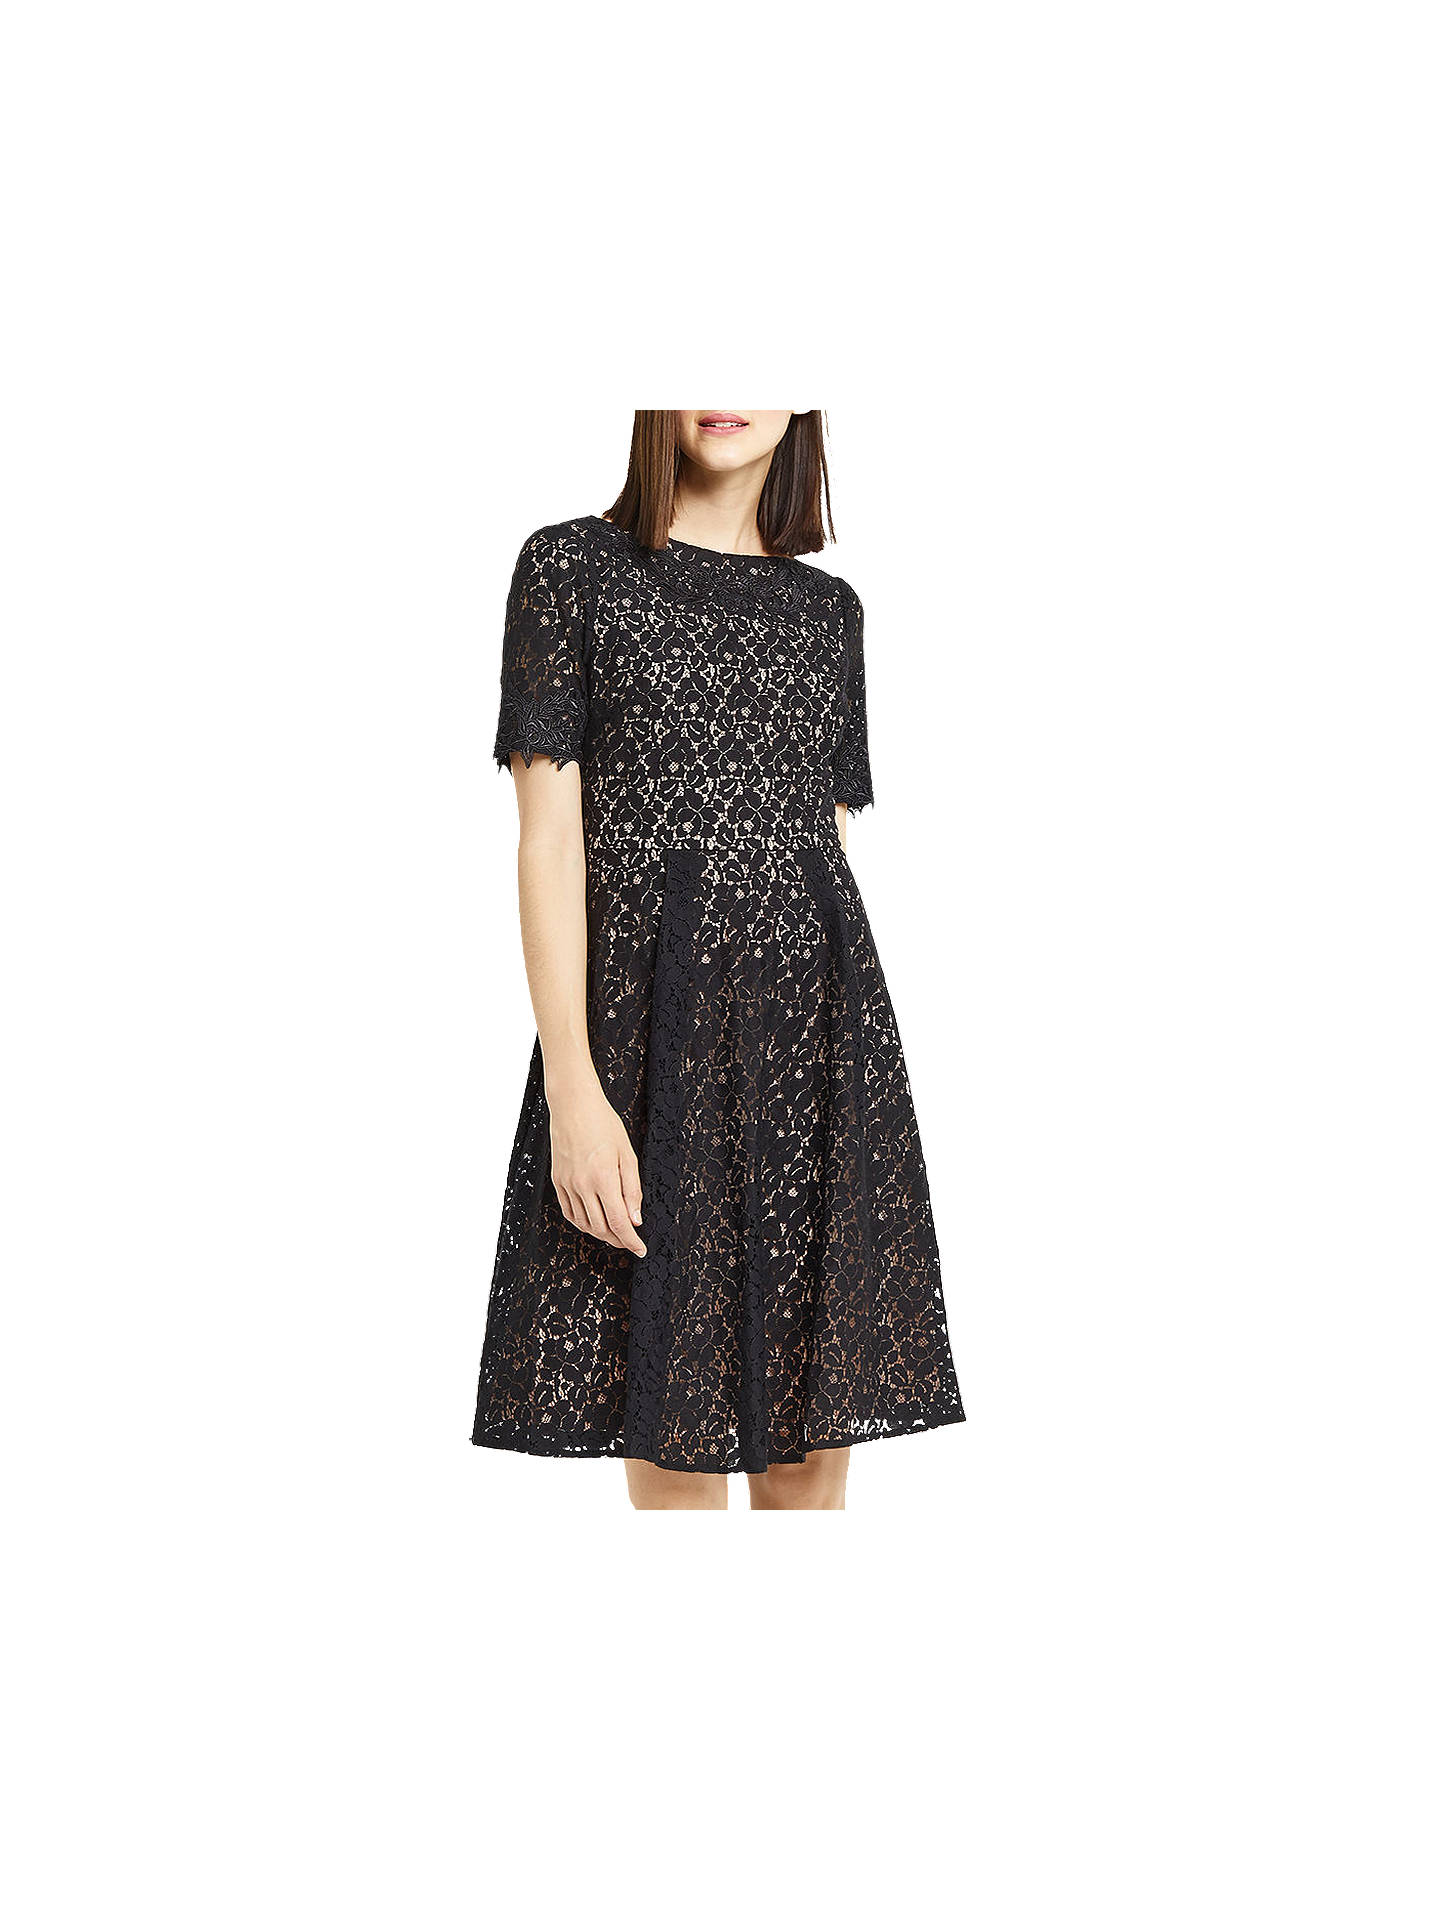 1969d6955b4a Buy Oasis Lace Skater Dress, Black, 6 Online at johnlewis.com ...